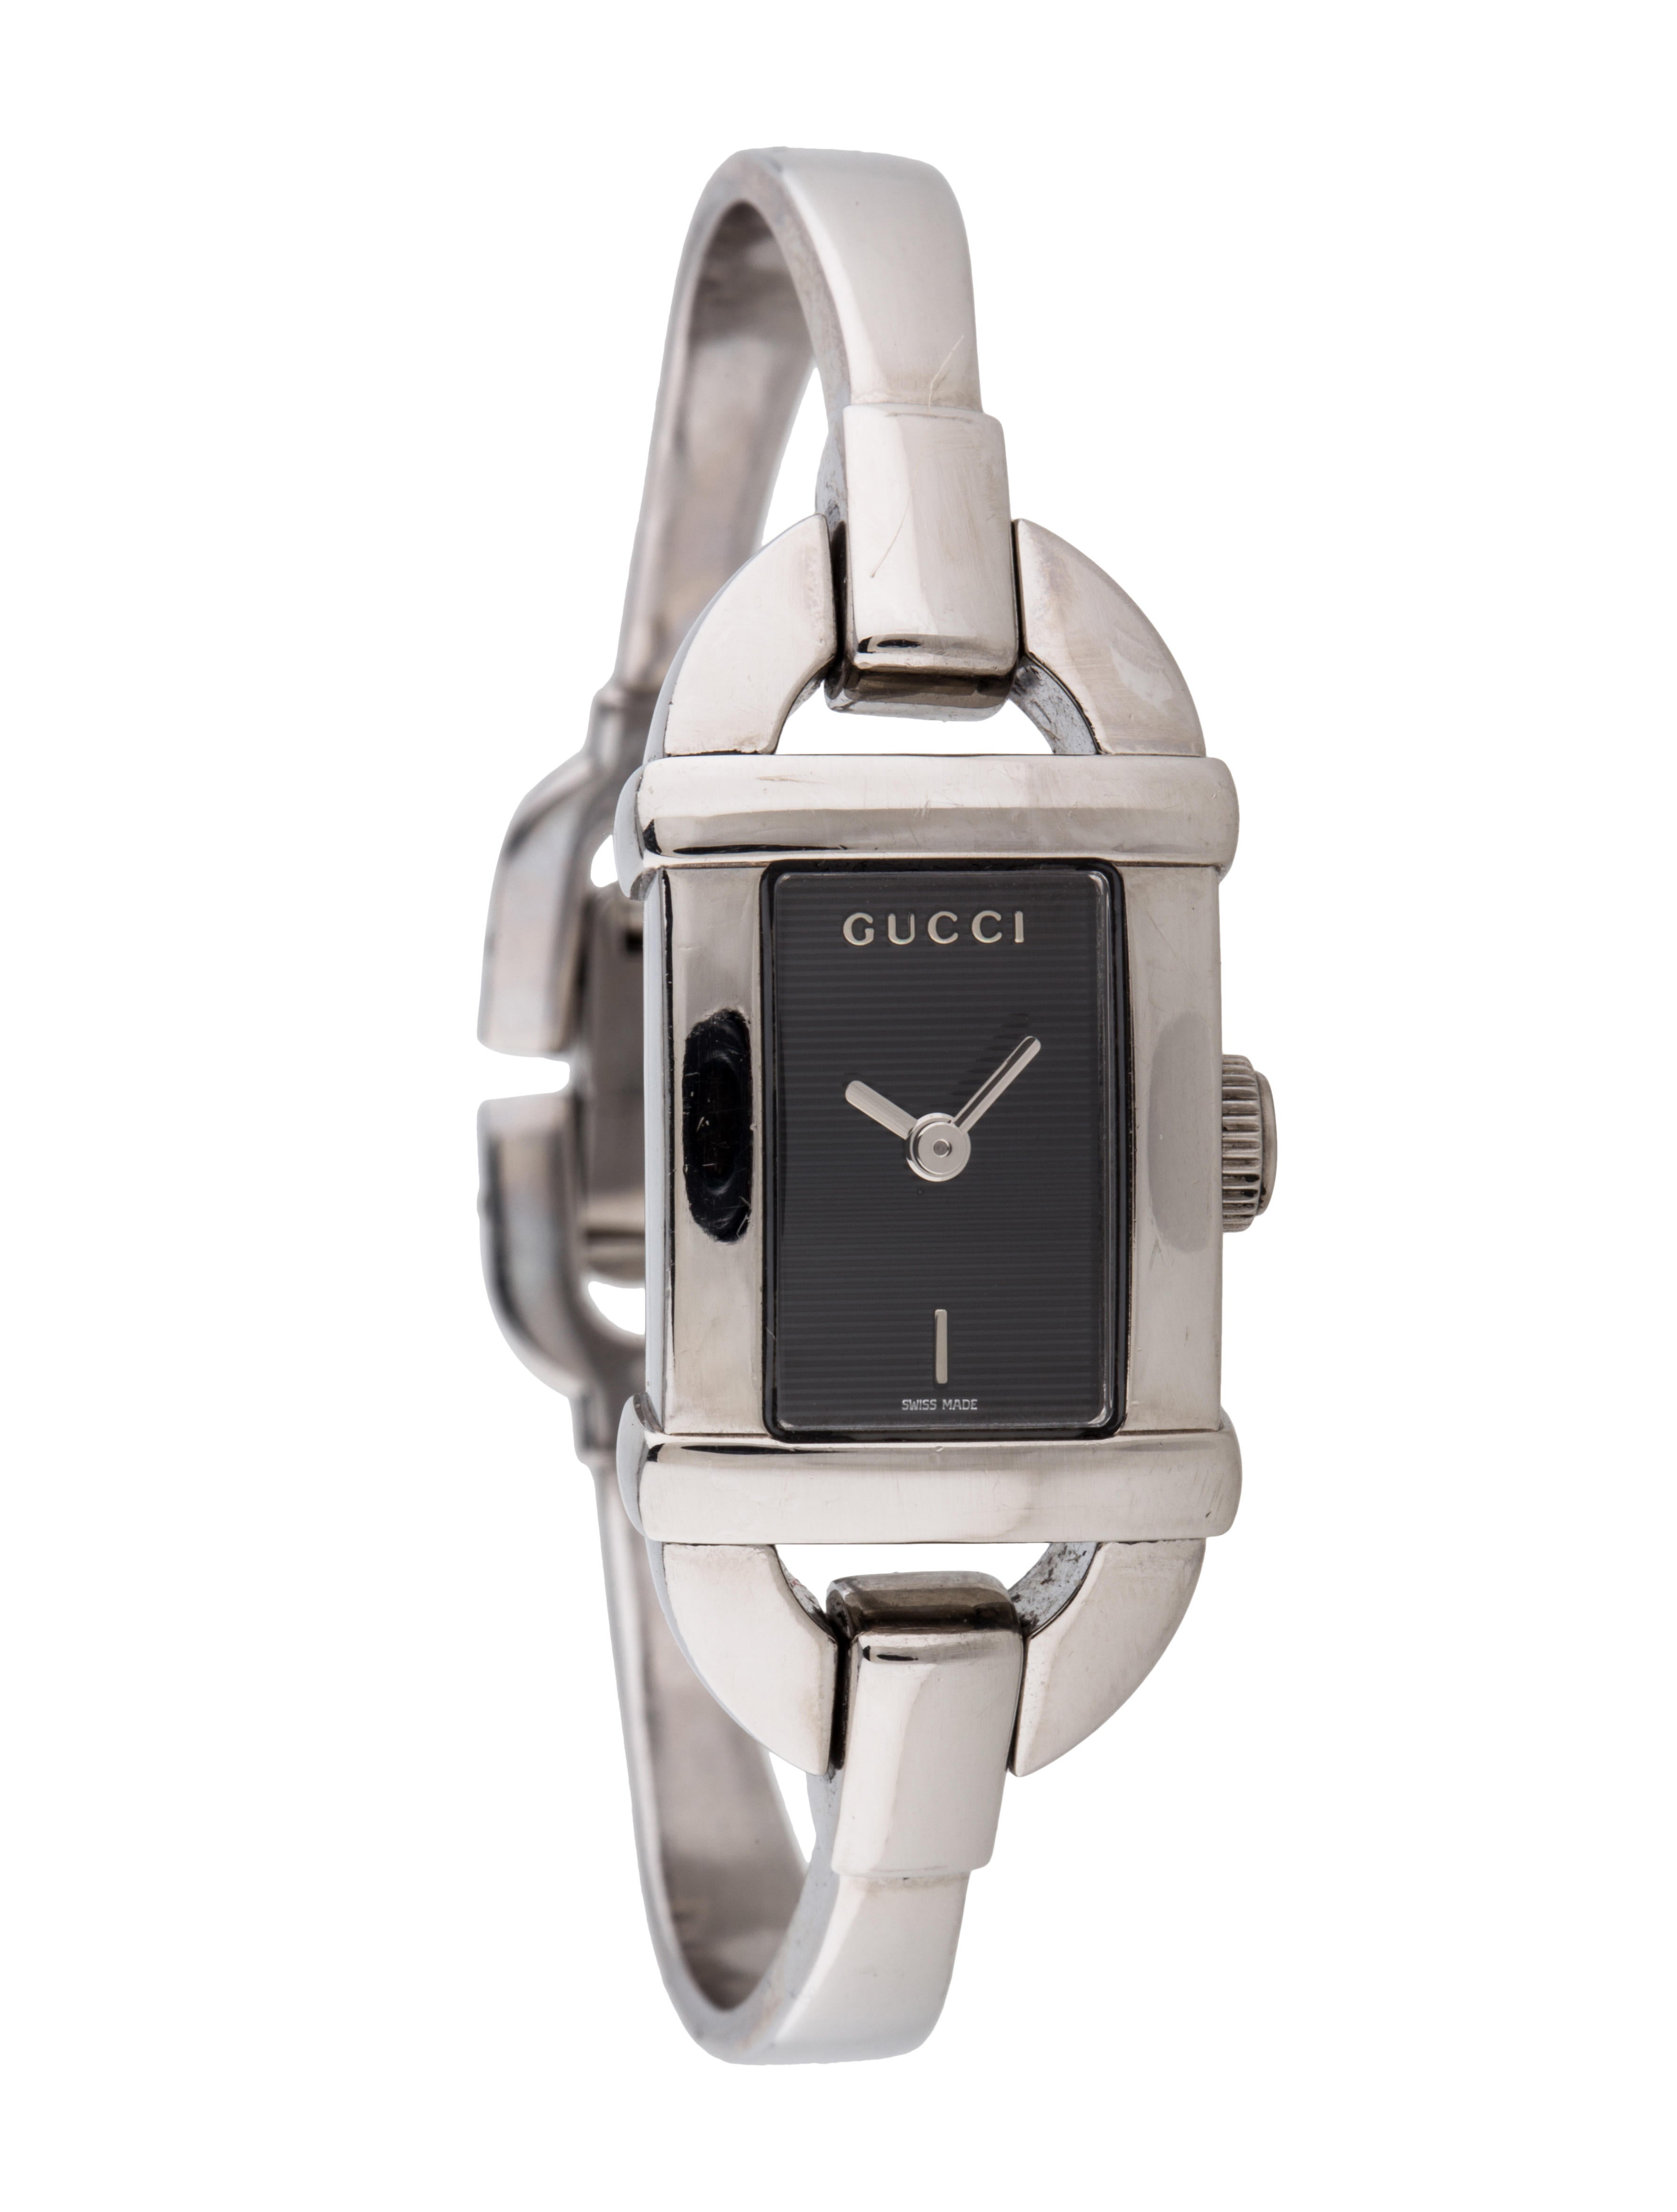 Gucci 6800l Watch Bracelet Guc61426 The Realreal